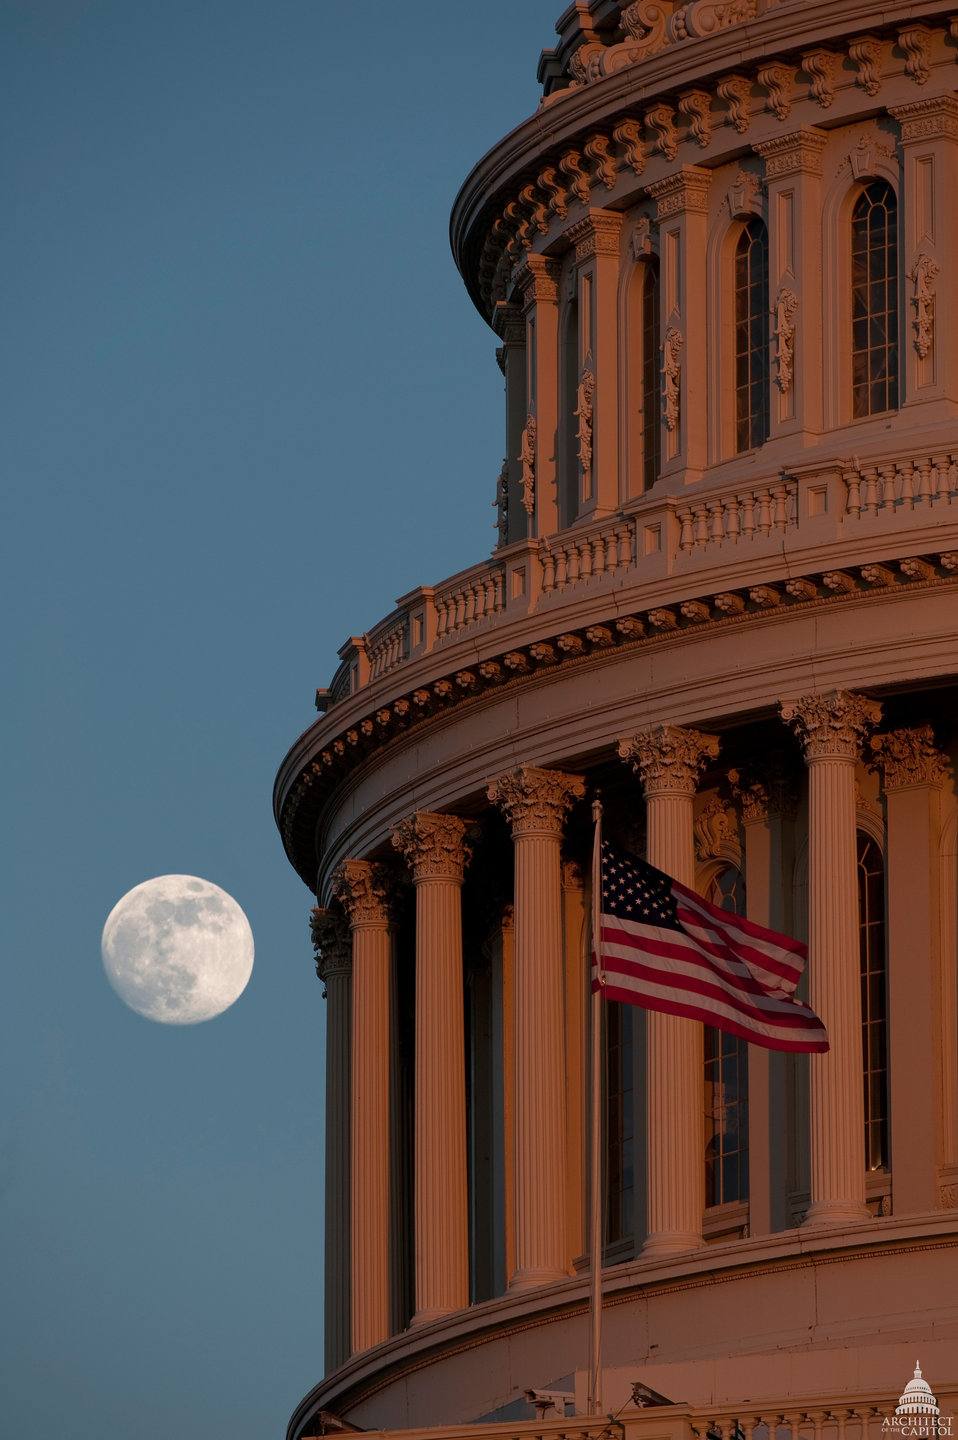 U.S. Capitol Dome and Full Moon